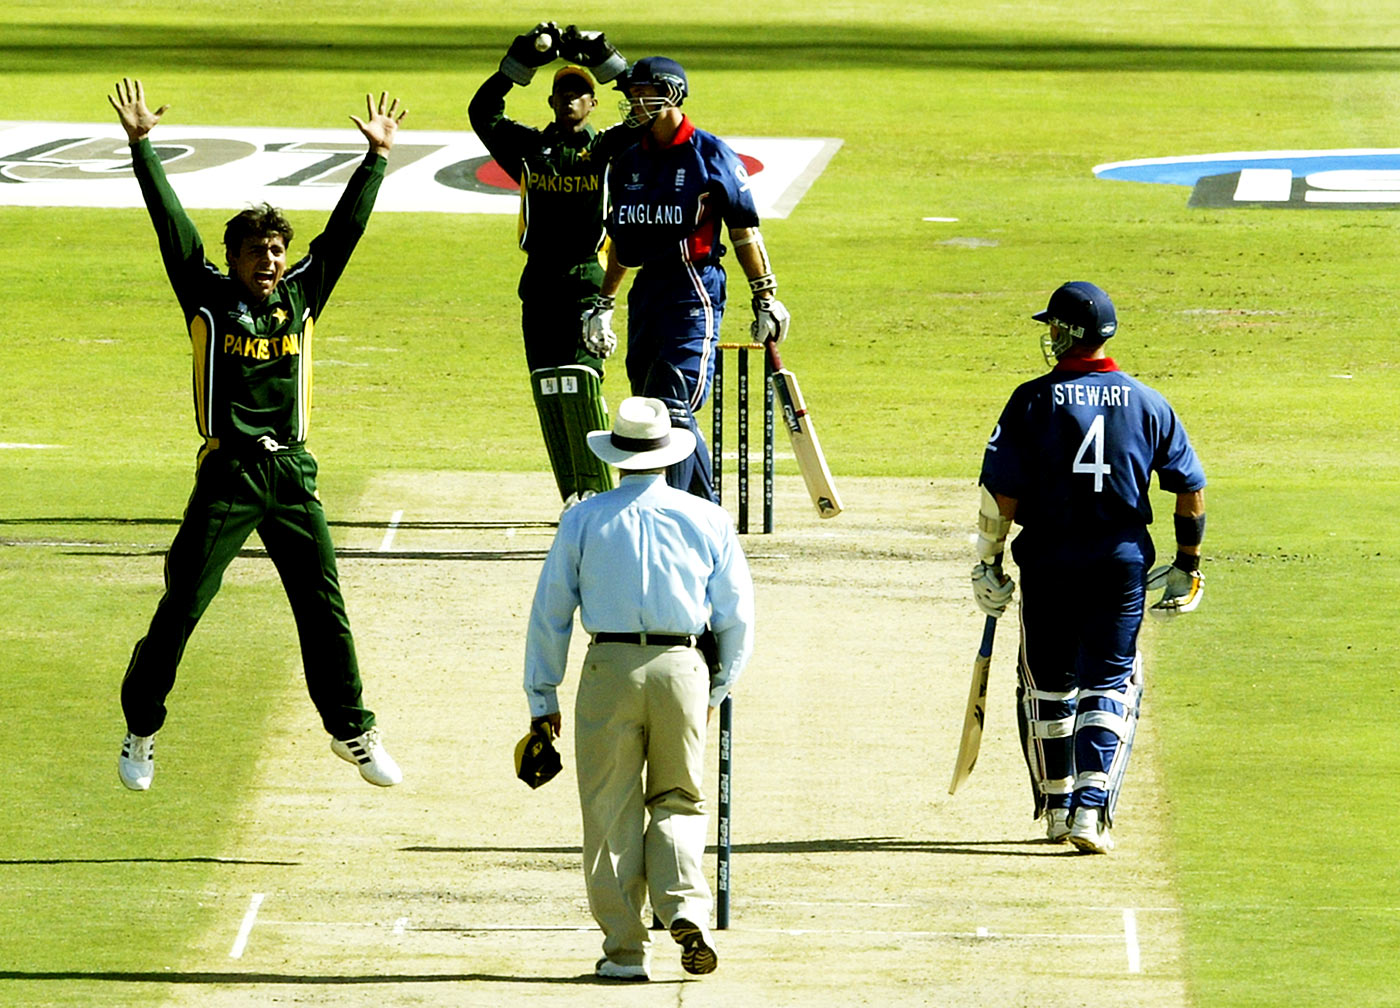 Second wind: Saqlain's invention allowed bowlers to make a comeback into run-stuffed ODIs